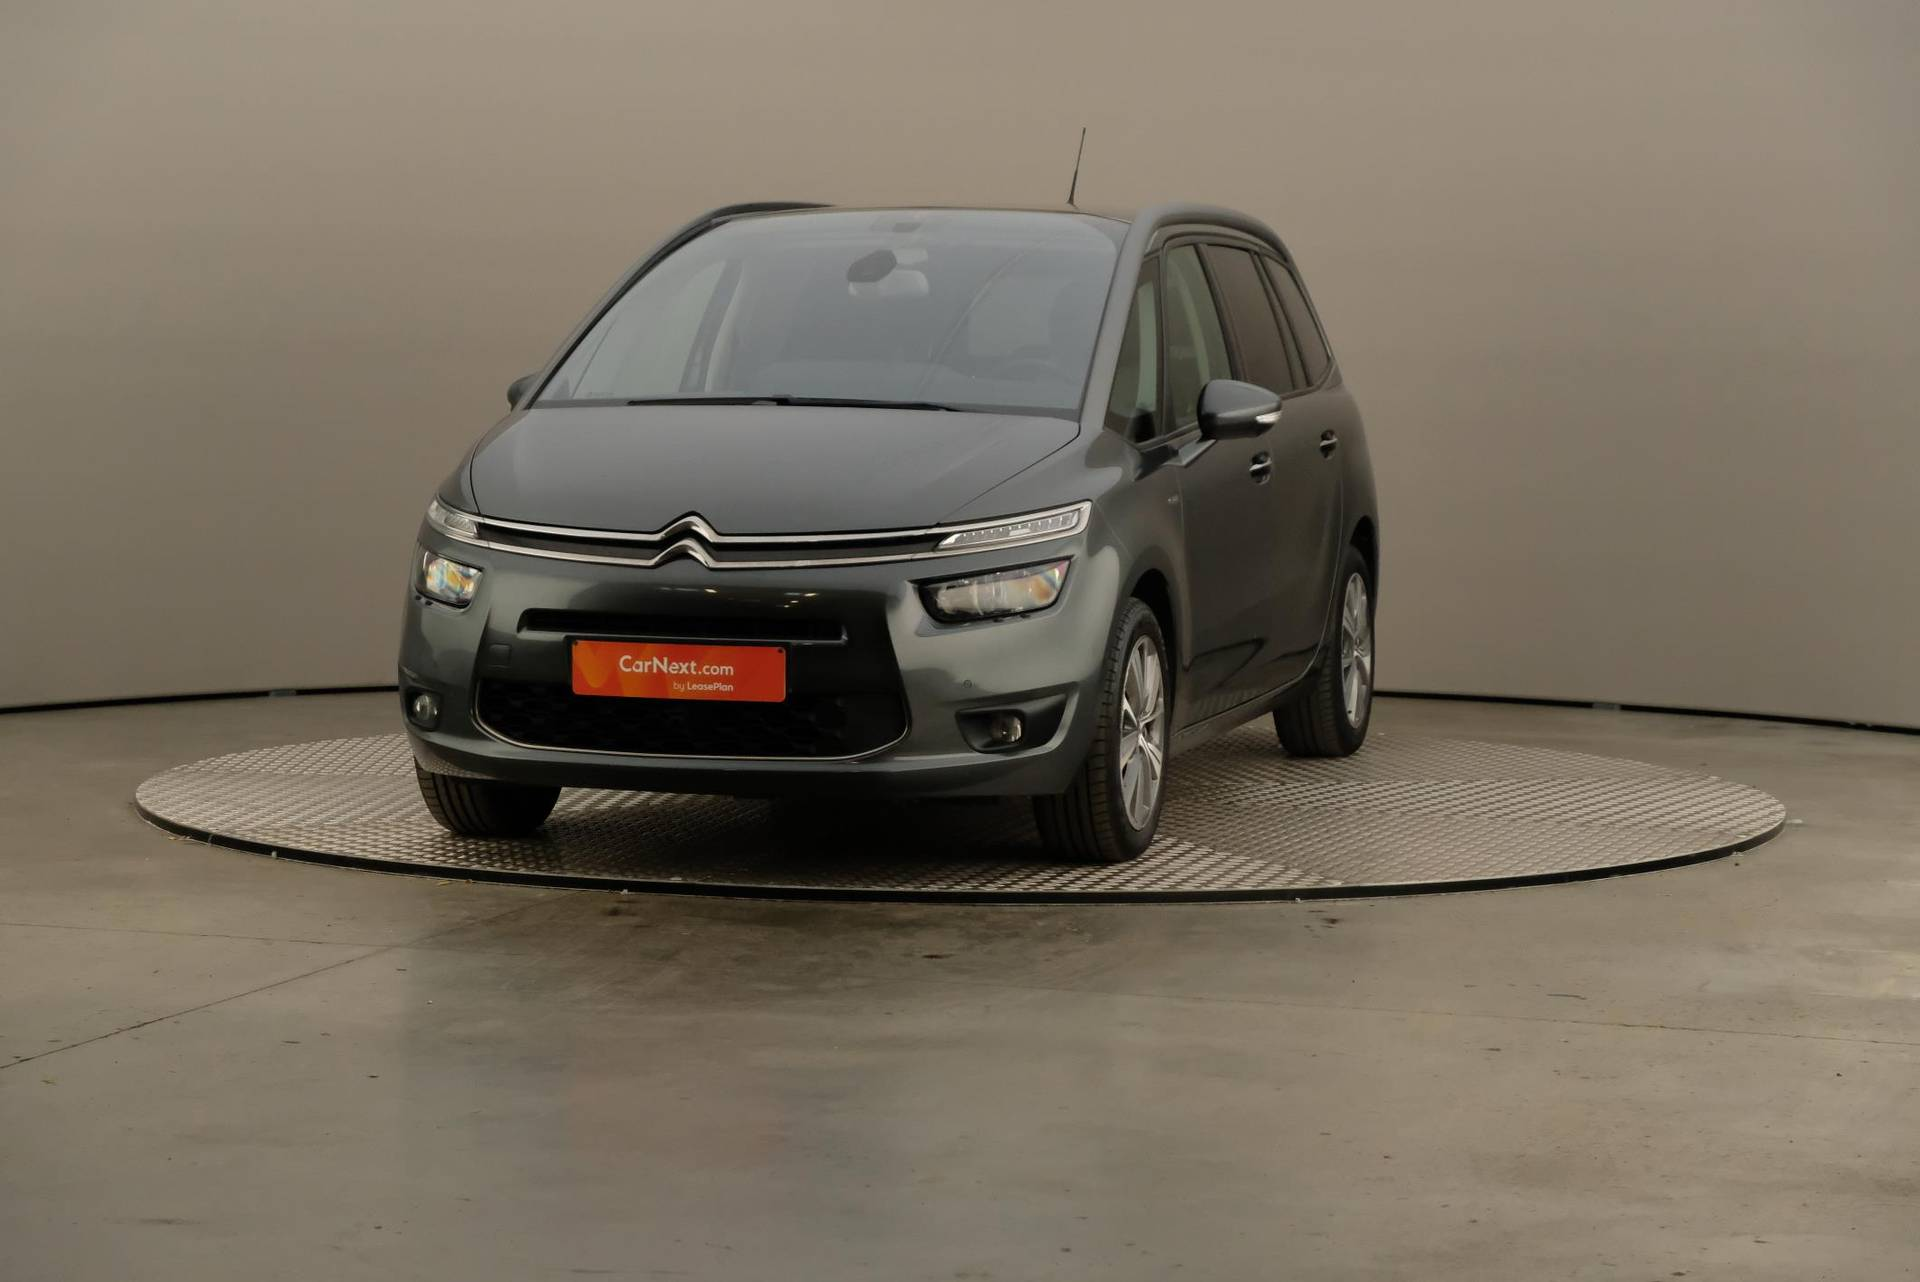 Citroën C4 Picasso e-HDi 115 ETG6, Attraction 7pl. PANO SOUND SYST. GPS CAMERA TREKHAAK..., 360-image33